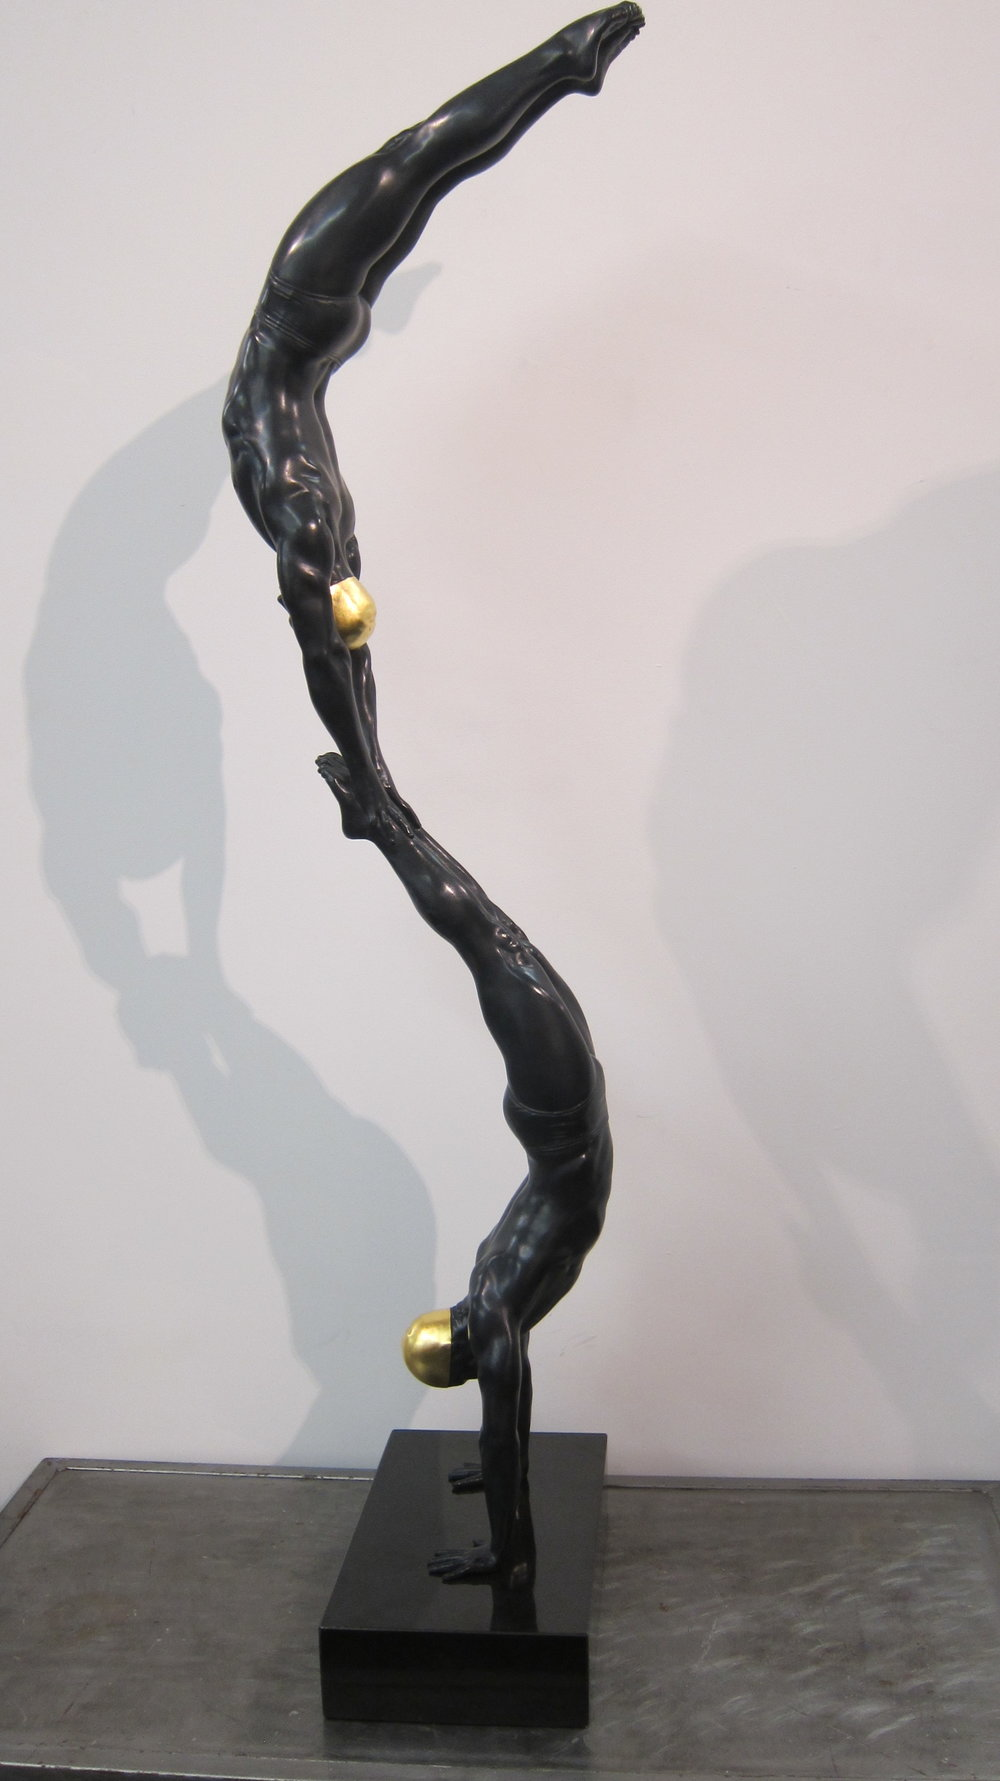 The Double Diver, 48 x 10 x 10, Black Patina With Gold Leaf Cap, 2015